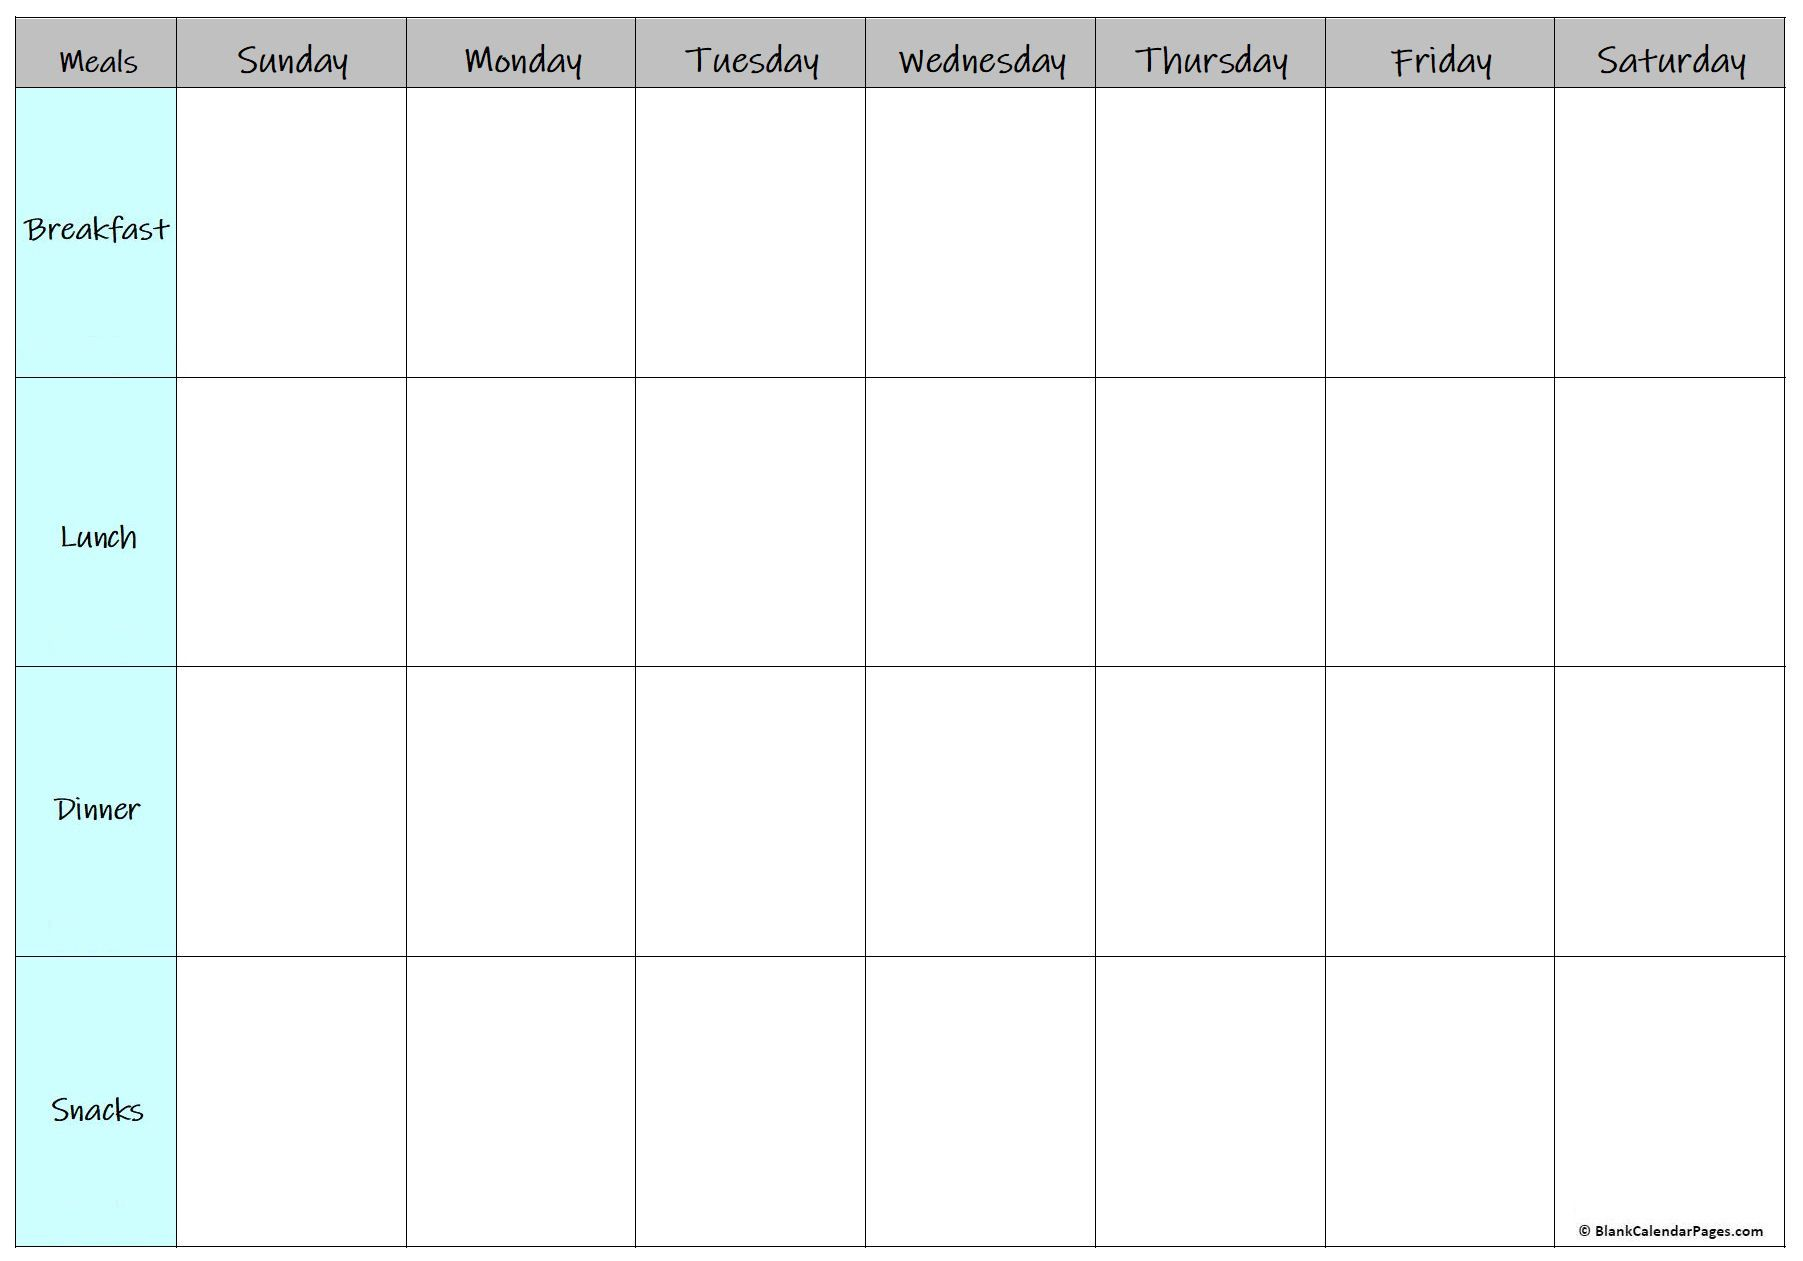 008 Amazing Meal Plan Calendar Template High Definition  Excel Weekly 30 DayFull